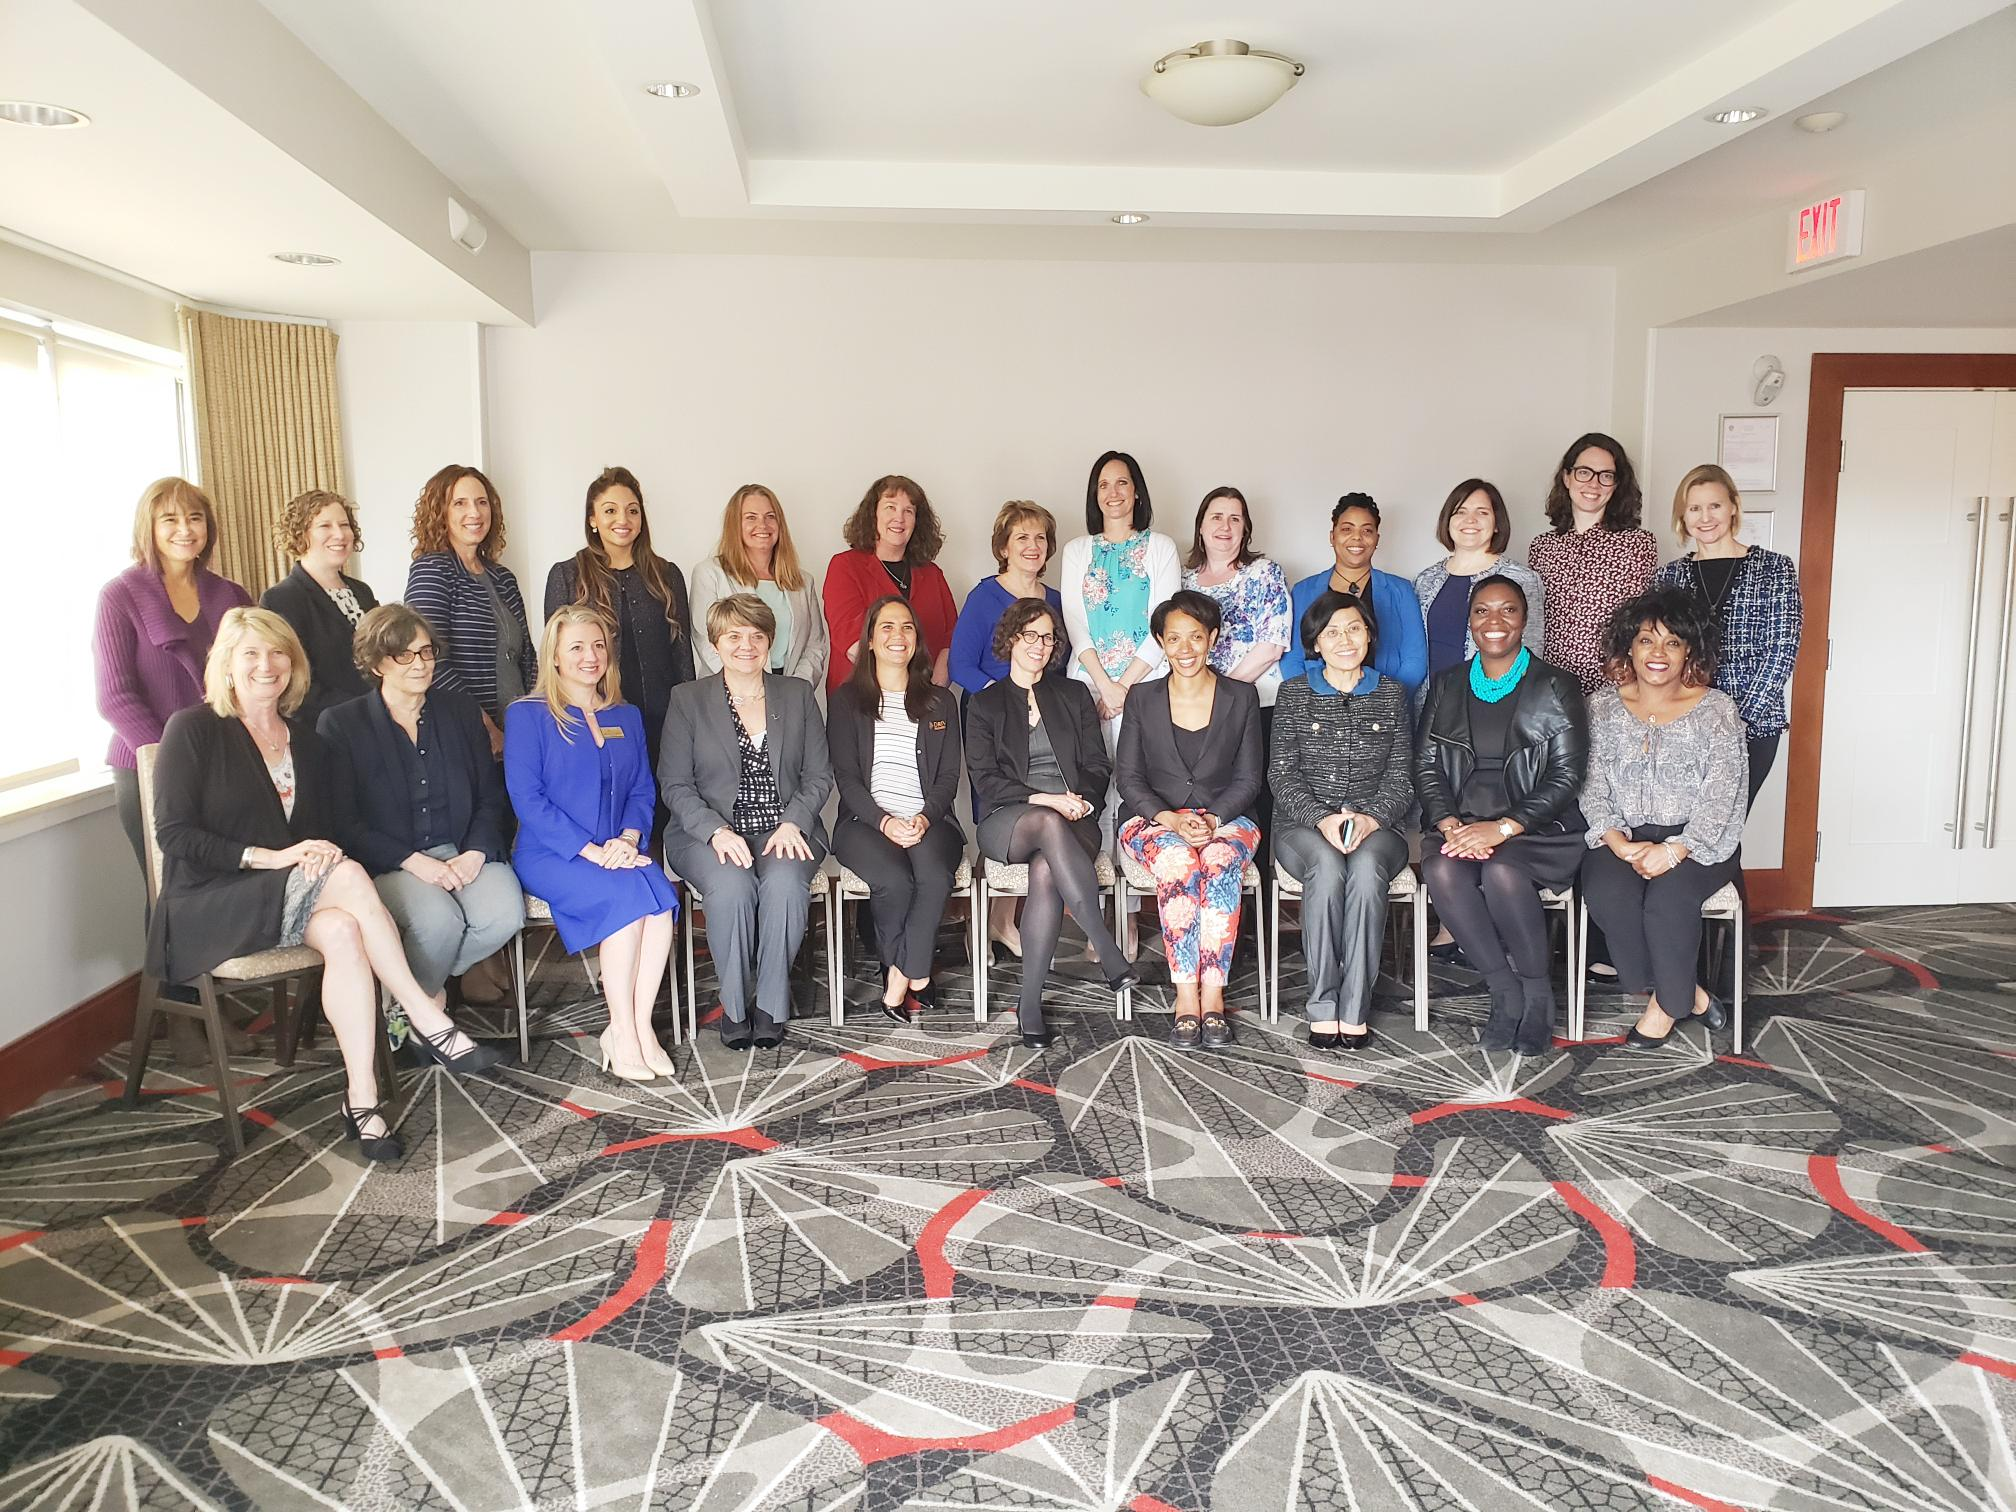 Fitzgerald Halliday Inc Fhi On Twitter Fhi S Principal President And Ceo Susan Vanbenschoten Lead The 6th Annual Women Business Owner S Roundtable At The Wts Org Annual Conference In Boston Wtsconference Fhiplan Https T Co Npcx0bvesd